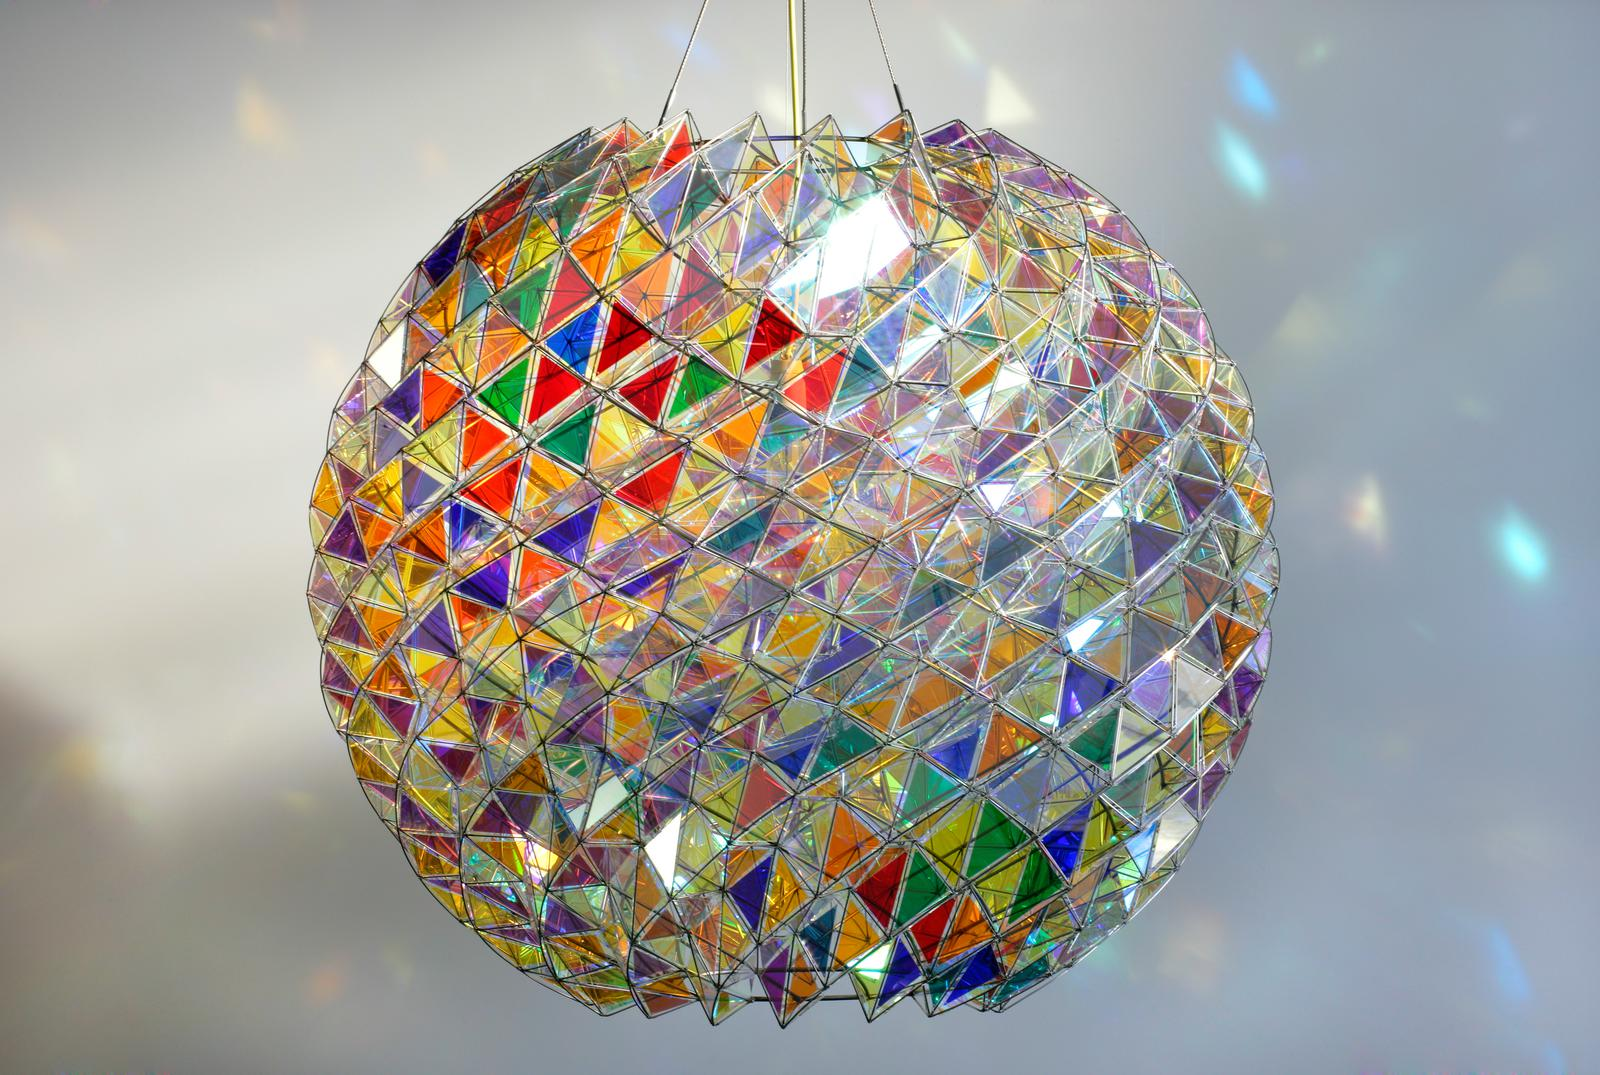 Berlin Colour Sphere Artwork Studio Olafur Eliasson